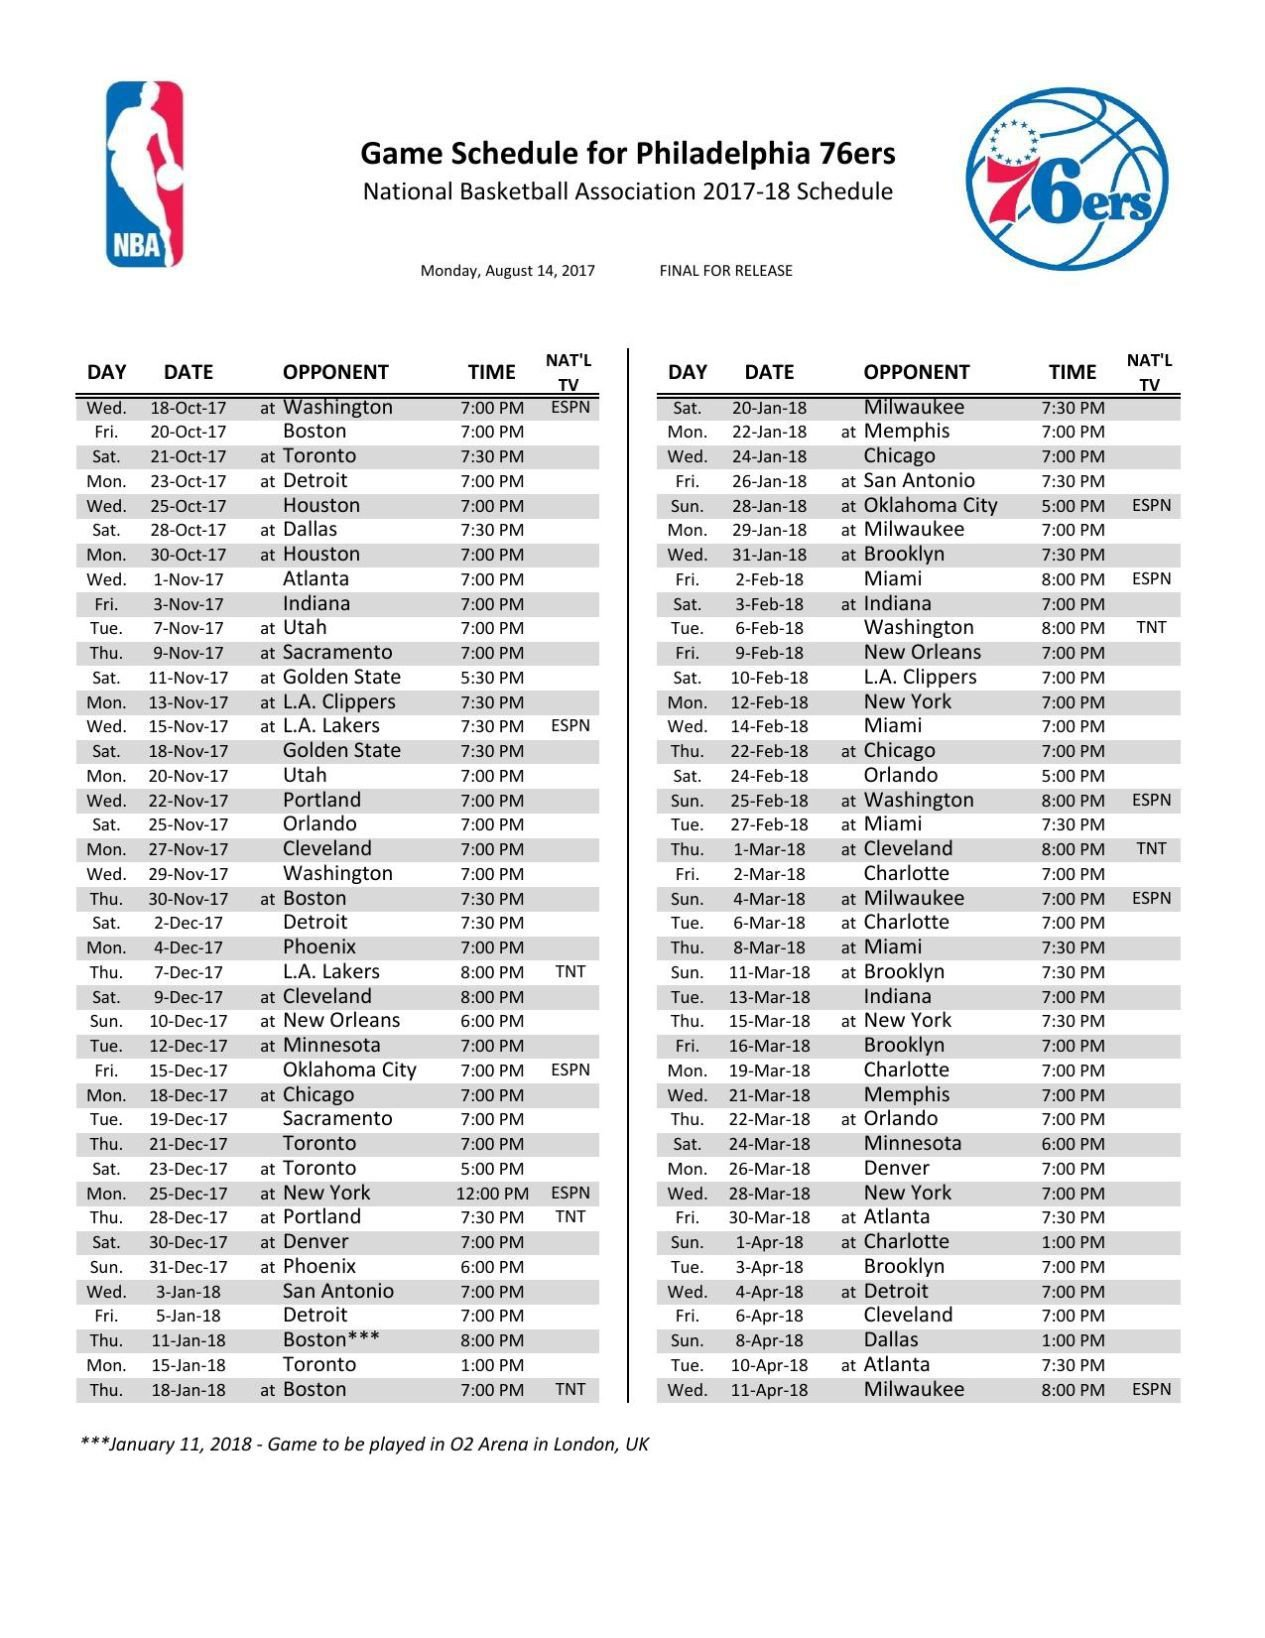 image relating to Uk Basketball Schedule -16 Printable called Sixers Routine